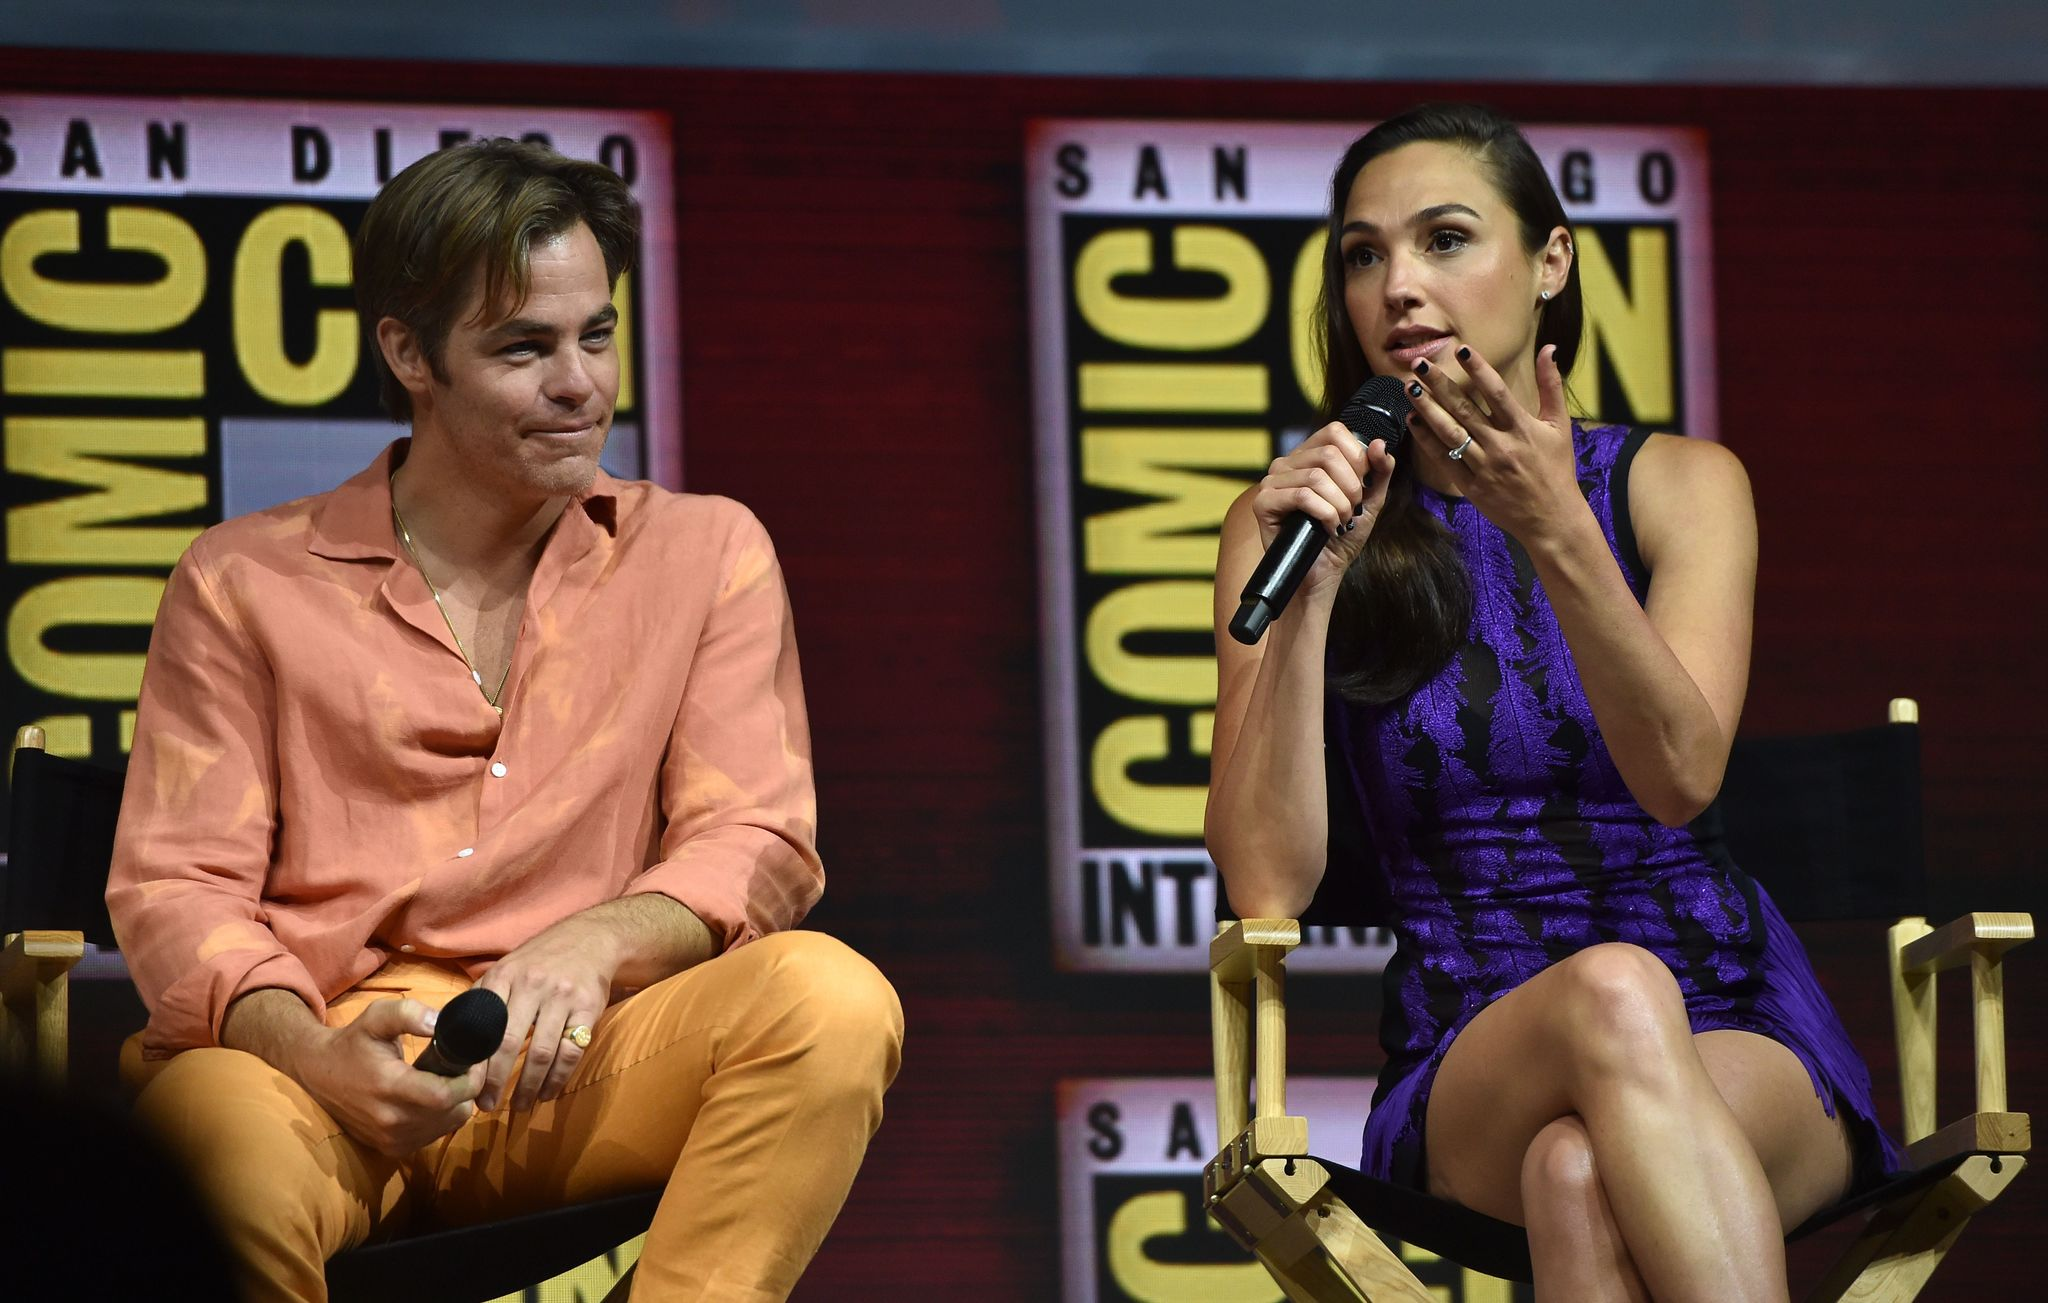 Chris Pine and Gal Gadot at an event for Wonder Woman 1984 (2020)